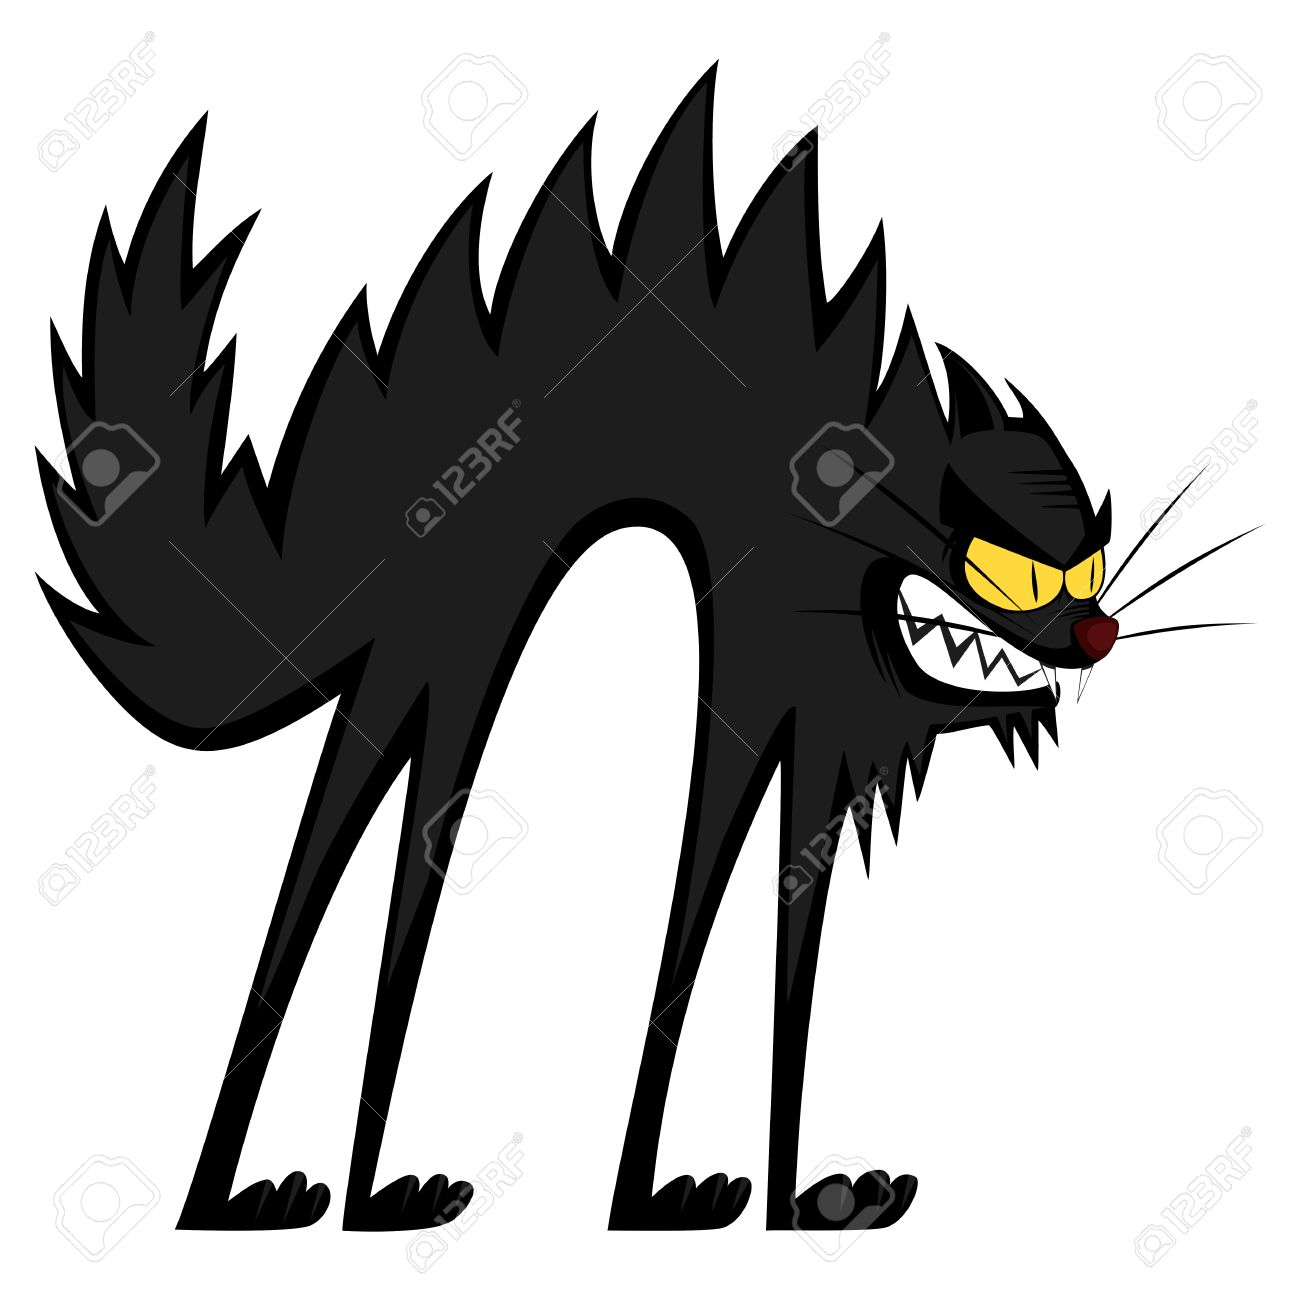 Cool Cats An Angry Black Tomcat Cartoon Royalty Free Cliparts Vectors And Stock Illustration Image 32574368